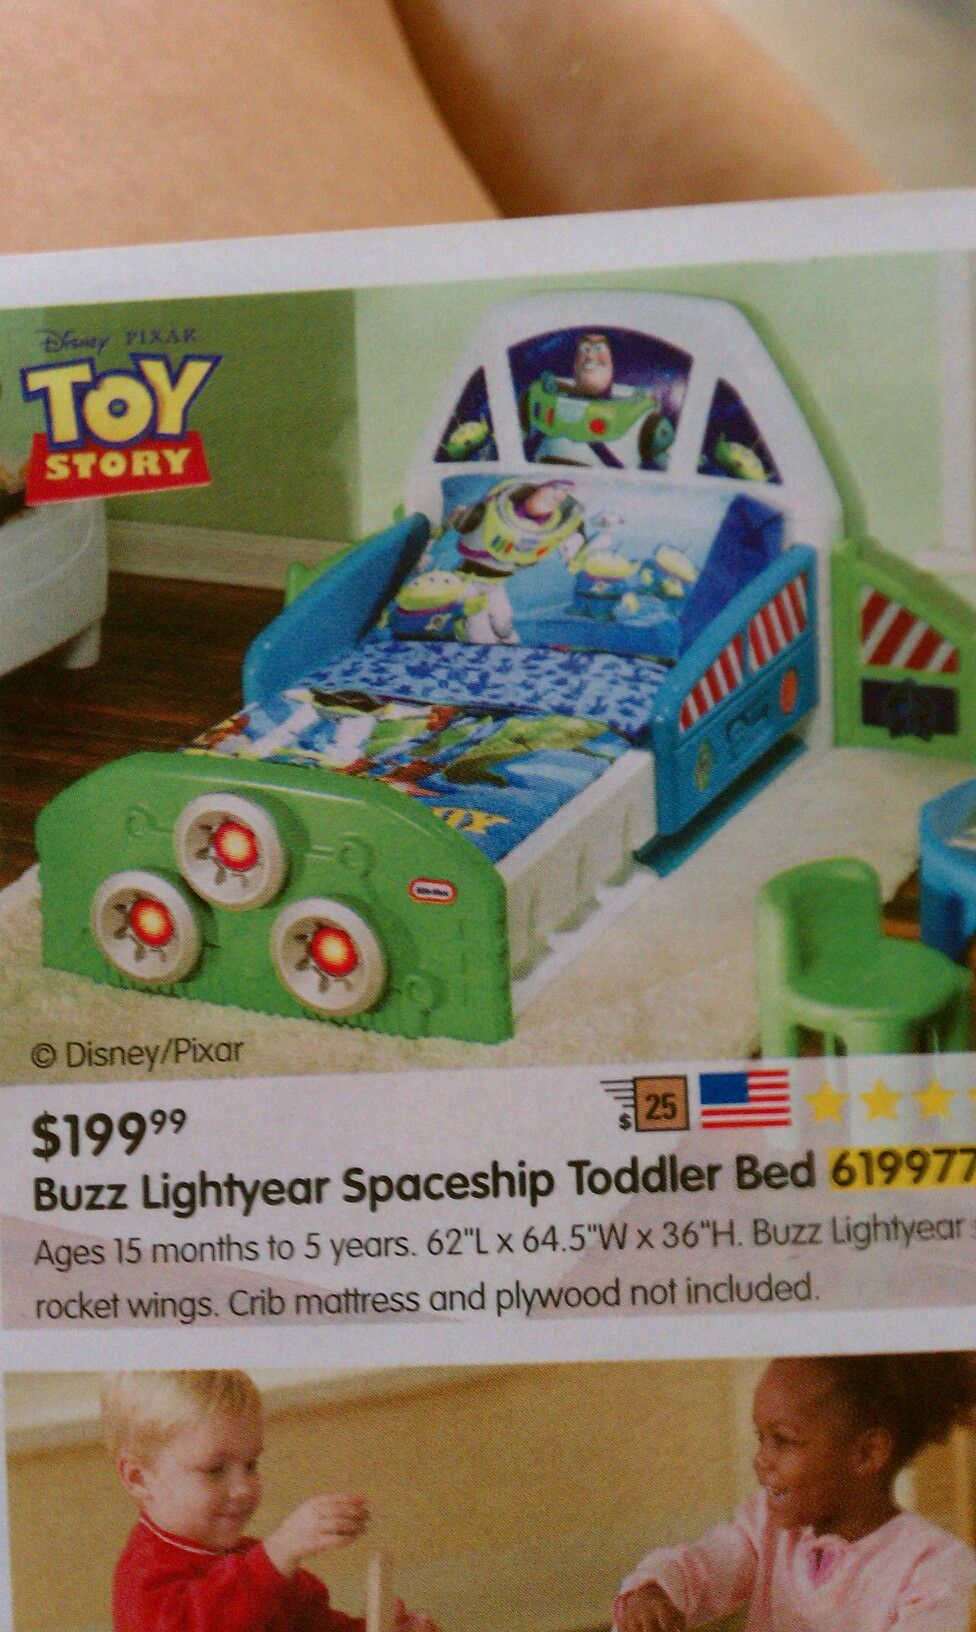 Buzz Lightyear Spaceship Toddler Bed | Wants, needs, and ...